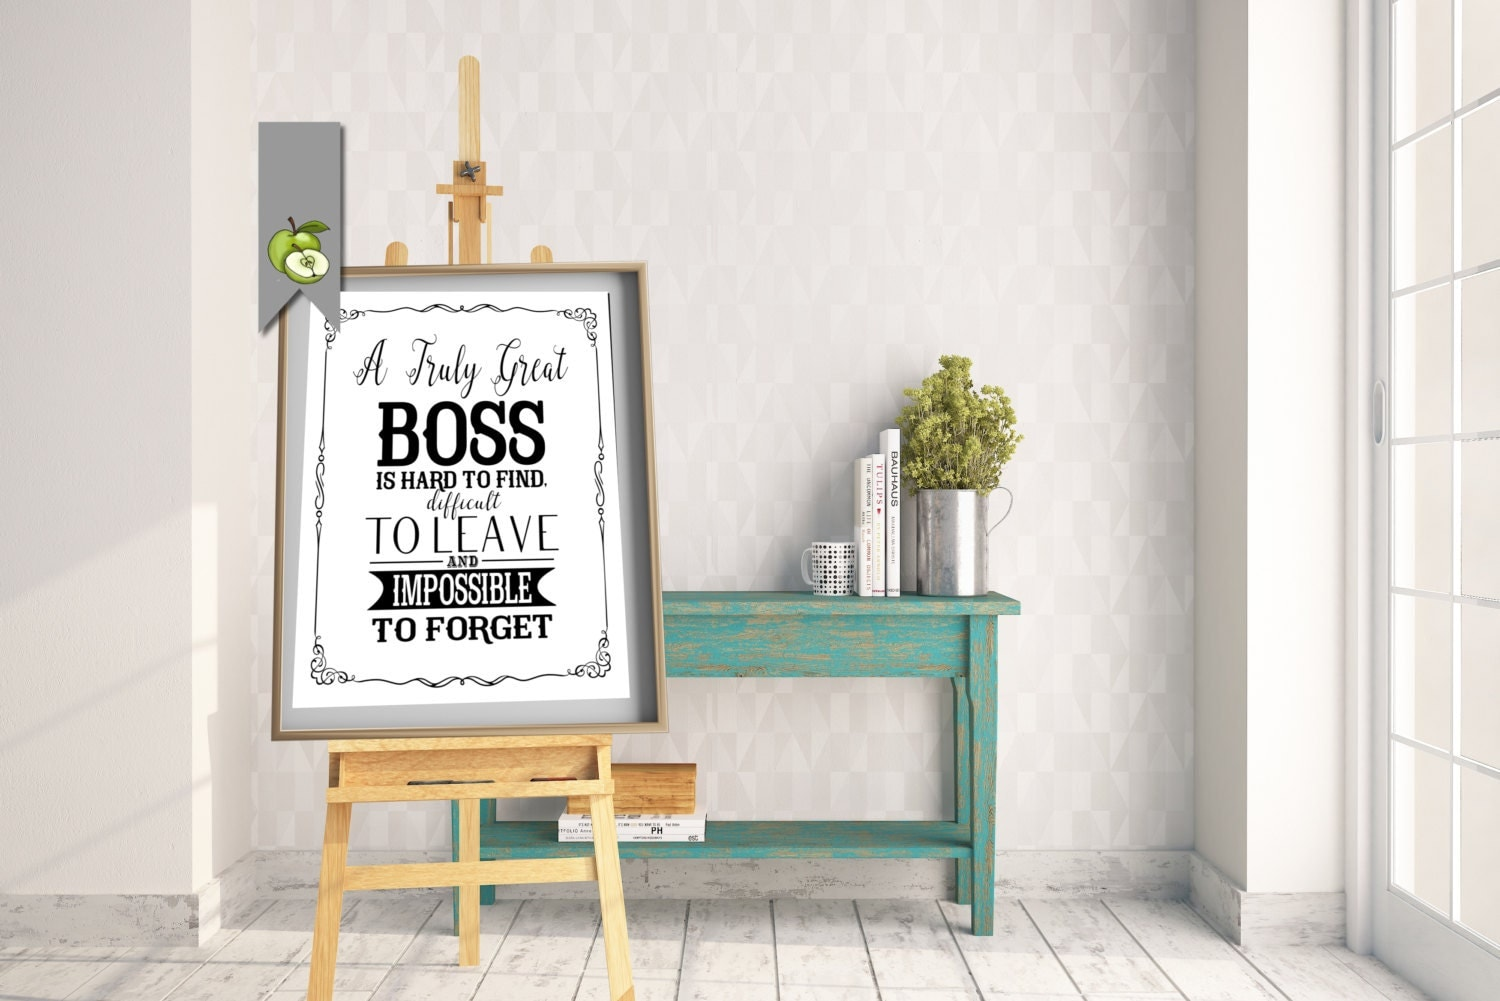 boss leaving boss appreciation day boss week boss card boss gift thank you boss mentor leader typographic printable retirement leaving gift